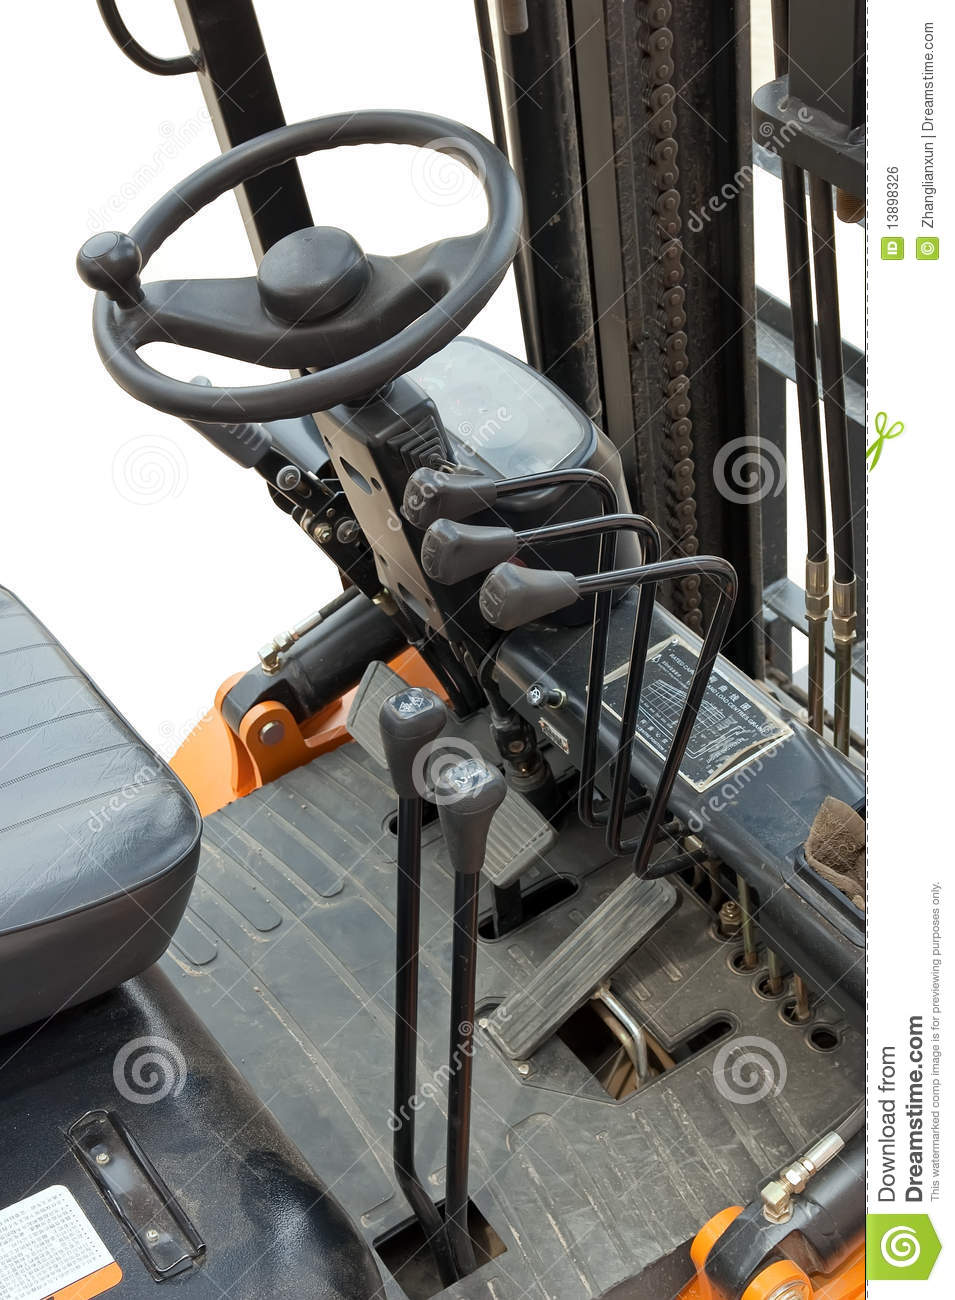 Fork Lift Foot : Forklift truck cab royalty free stock image